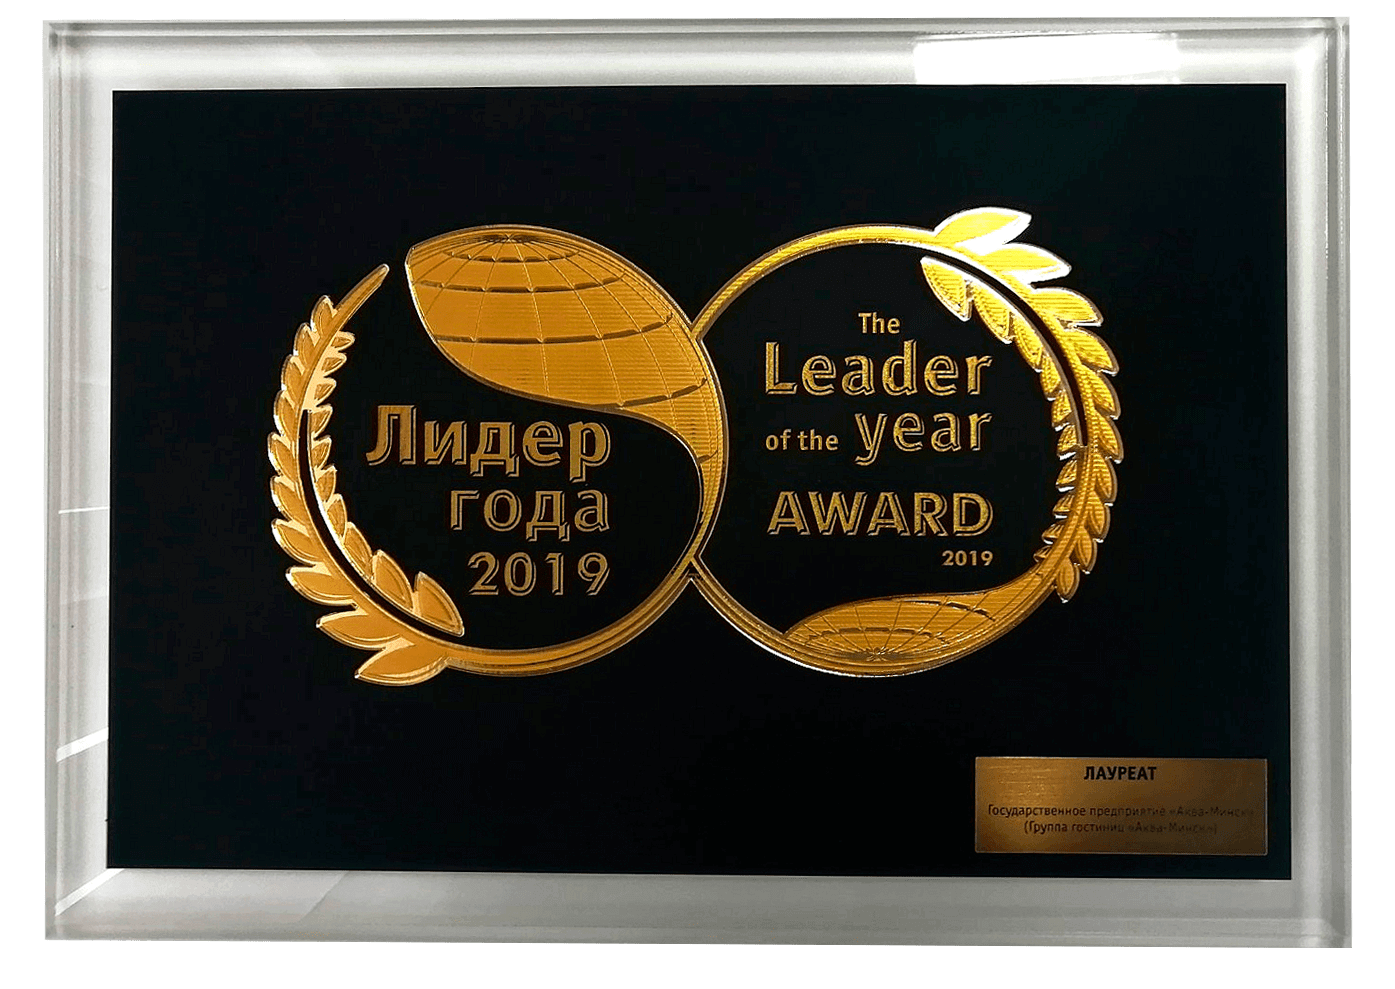 The leader of the year